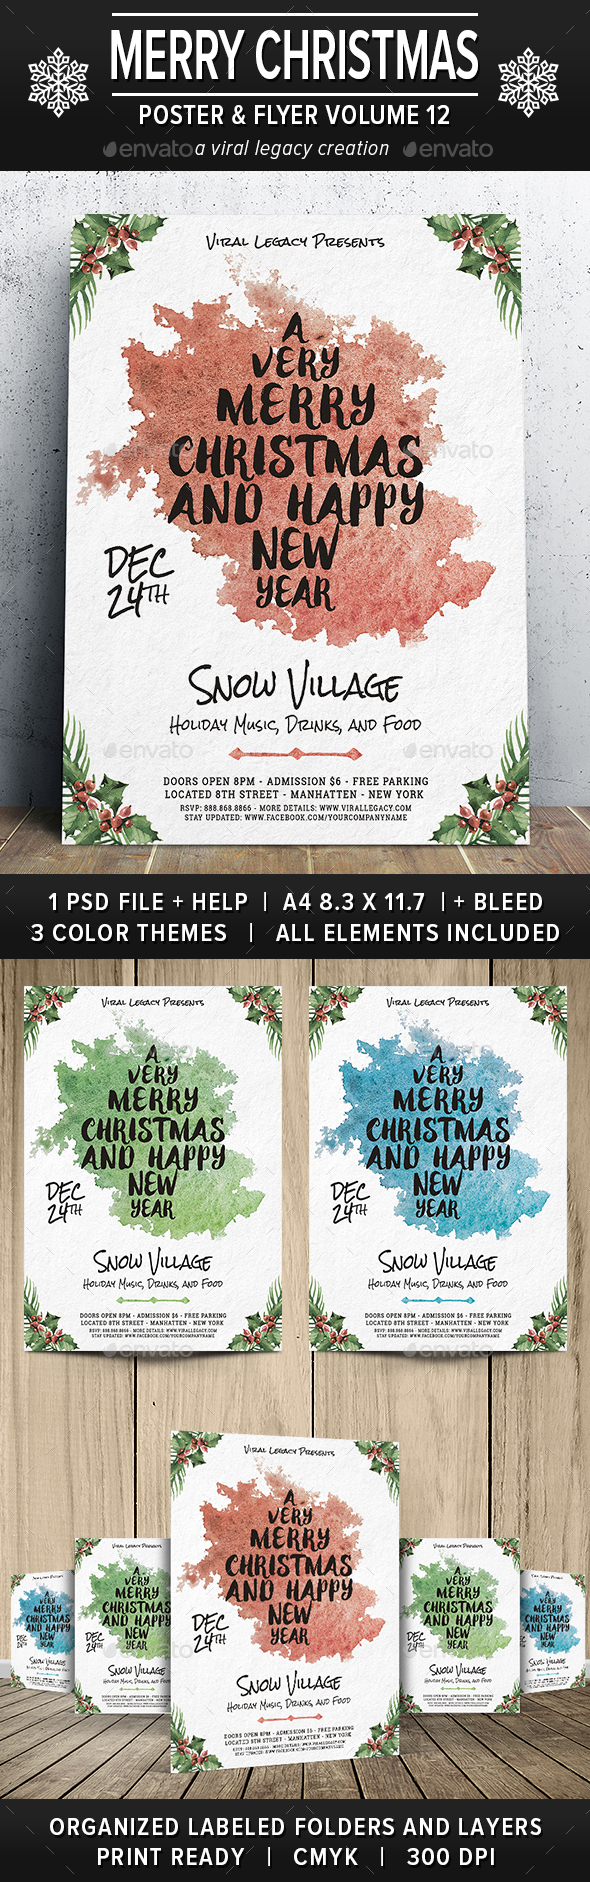 Merry Christmas Poster / Flyer V12 - Flyers Print Templates